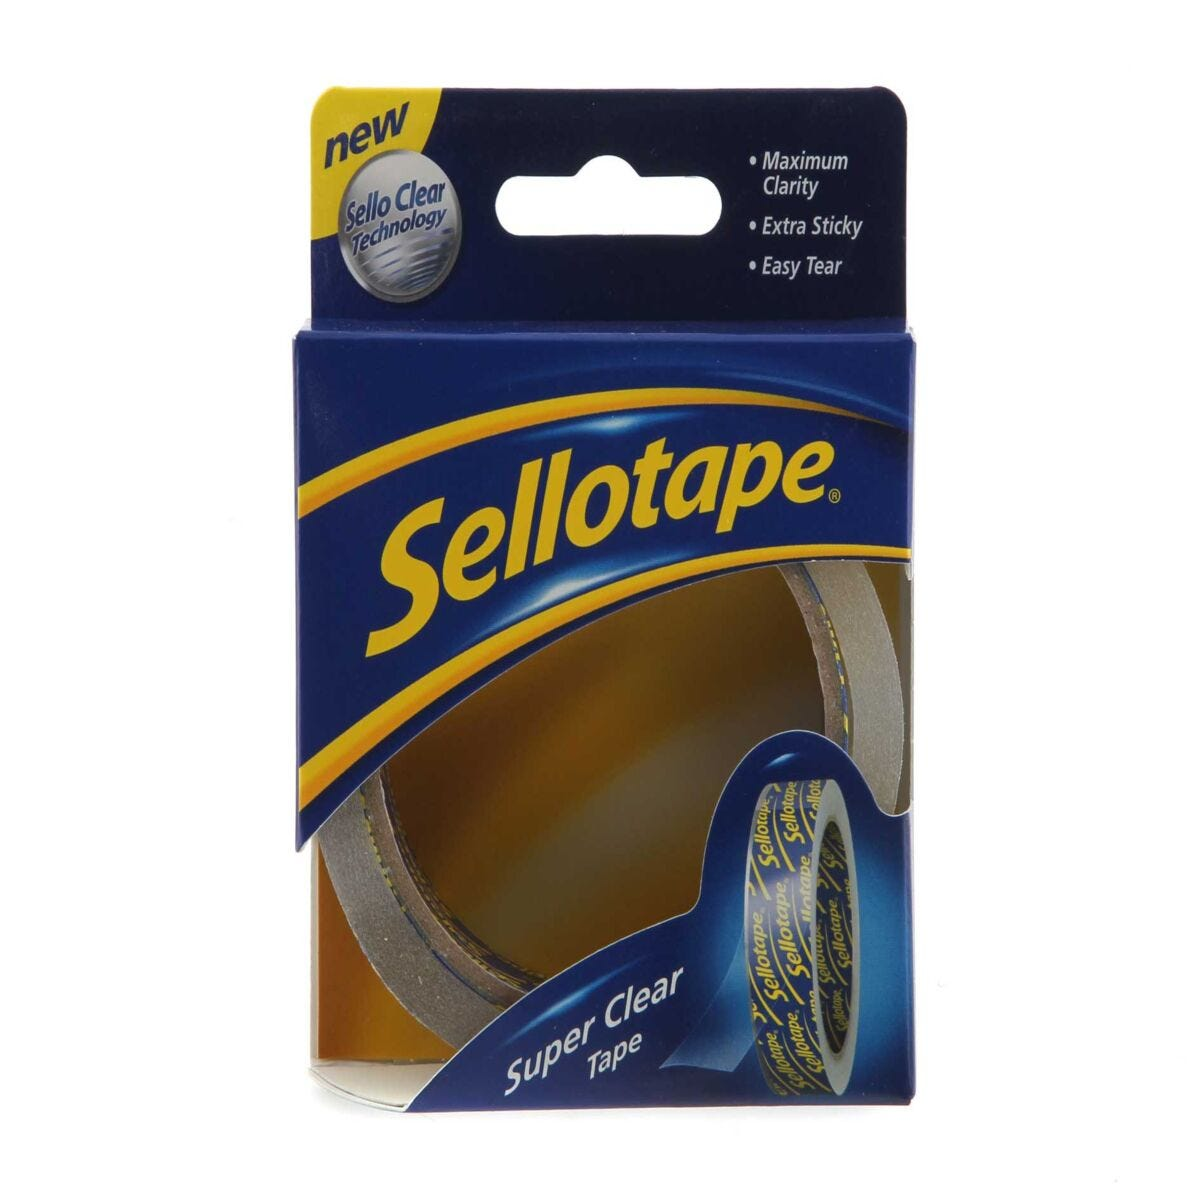 Sellotape Super Roll 24mmx50m Pack of 6